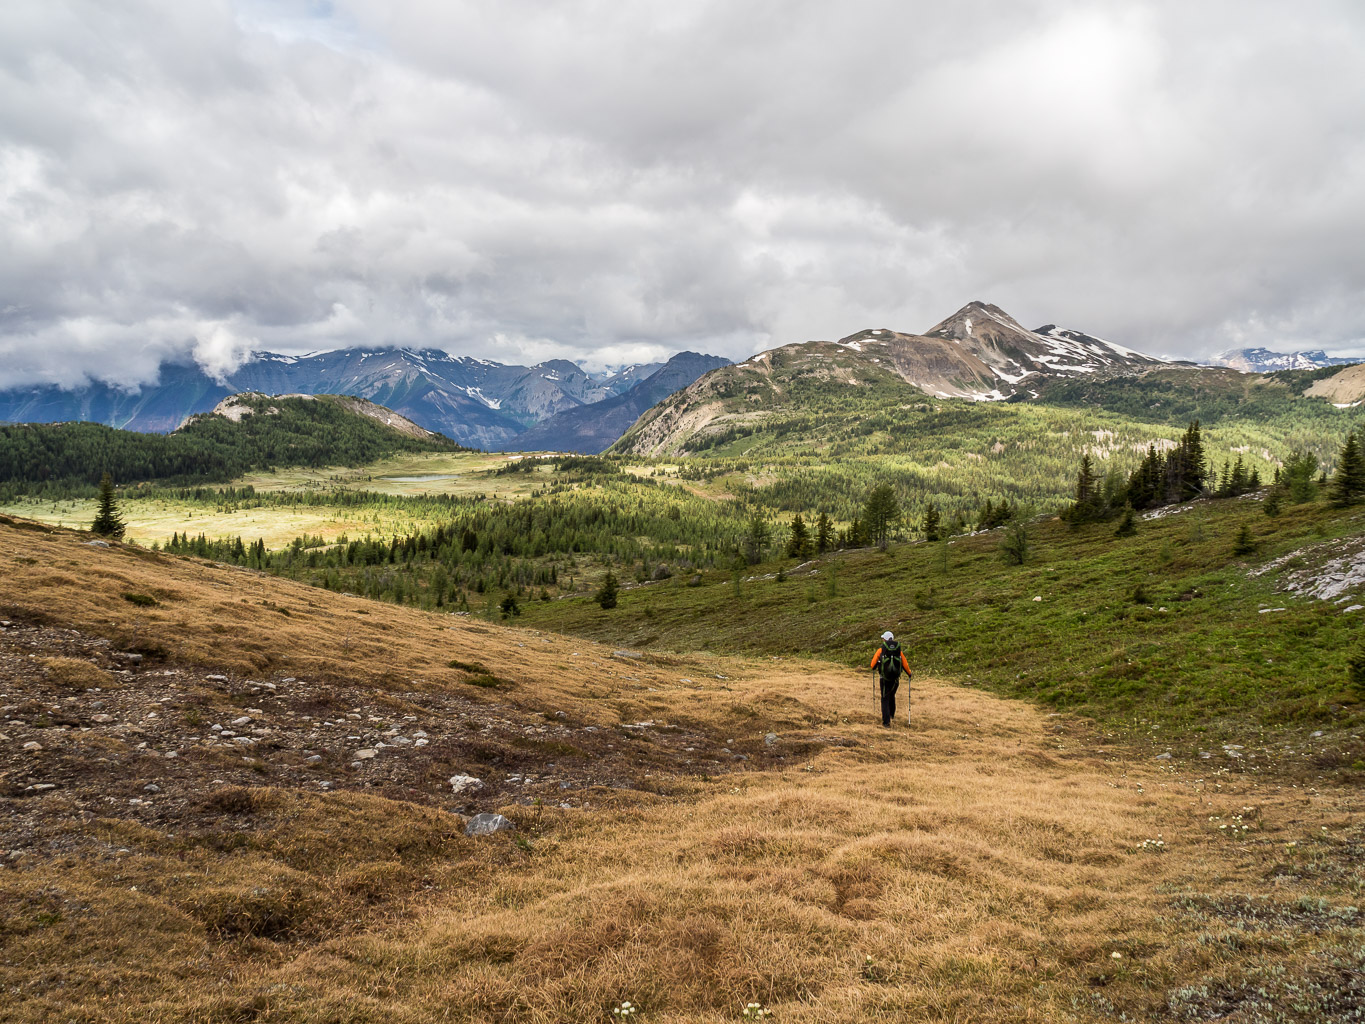 Hiking back across the alpine meadows to the main trail which is left of us here.